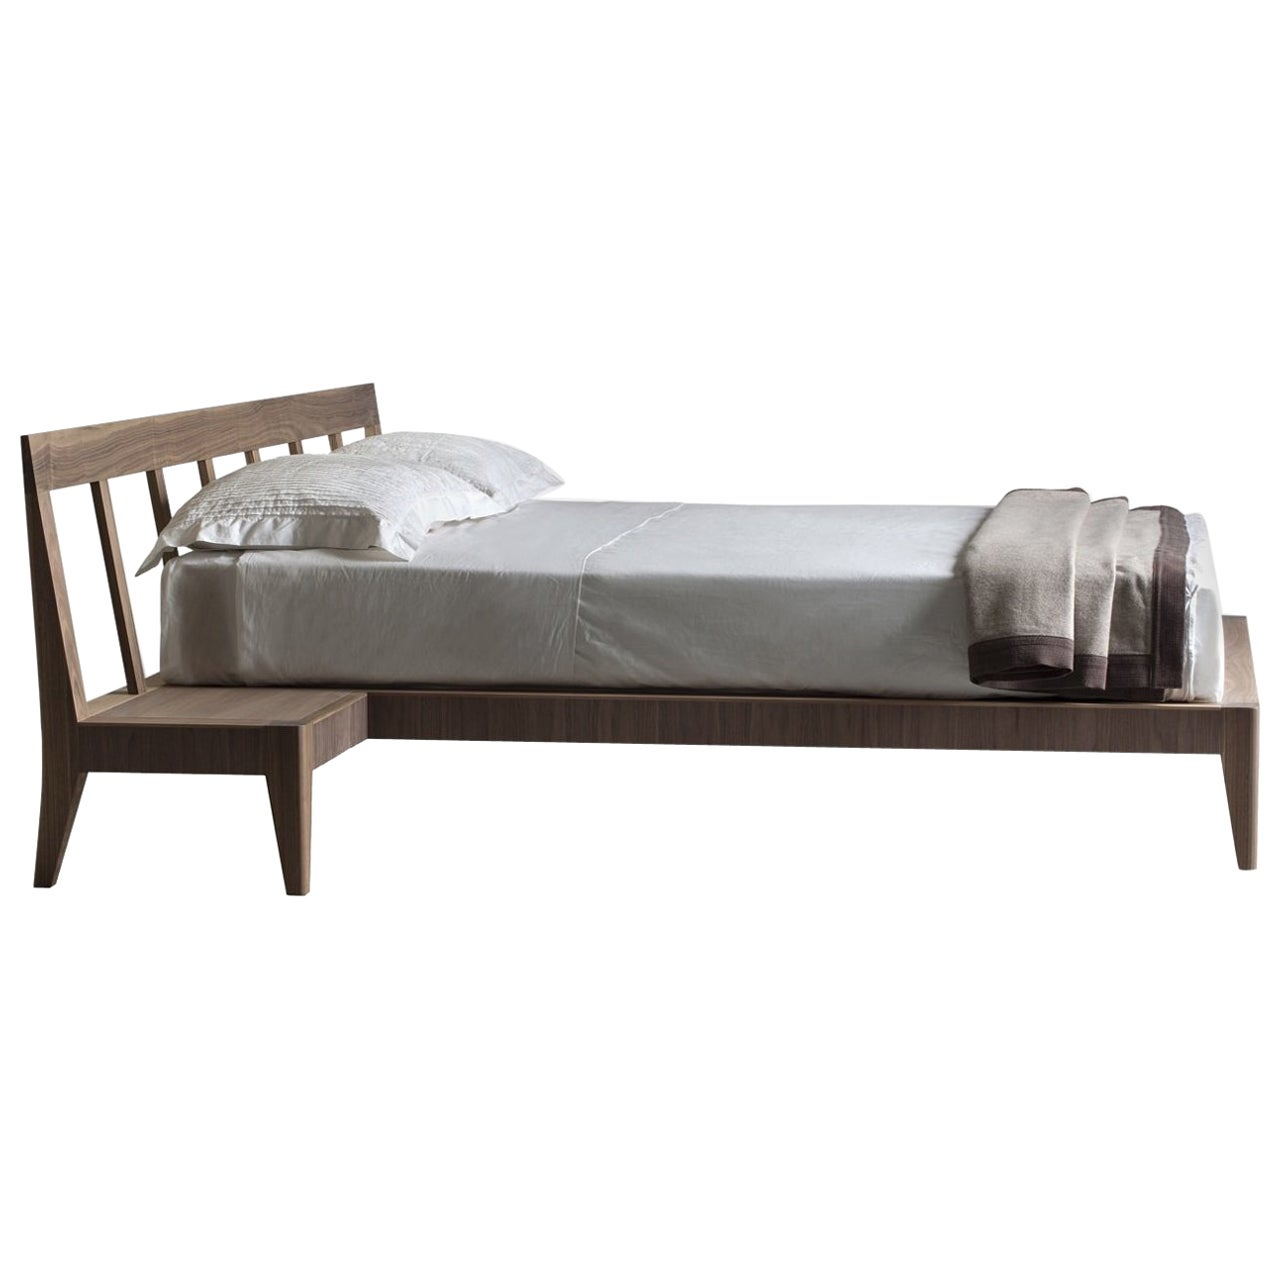 Magic Dream Bed Frame and Nightstand